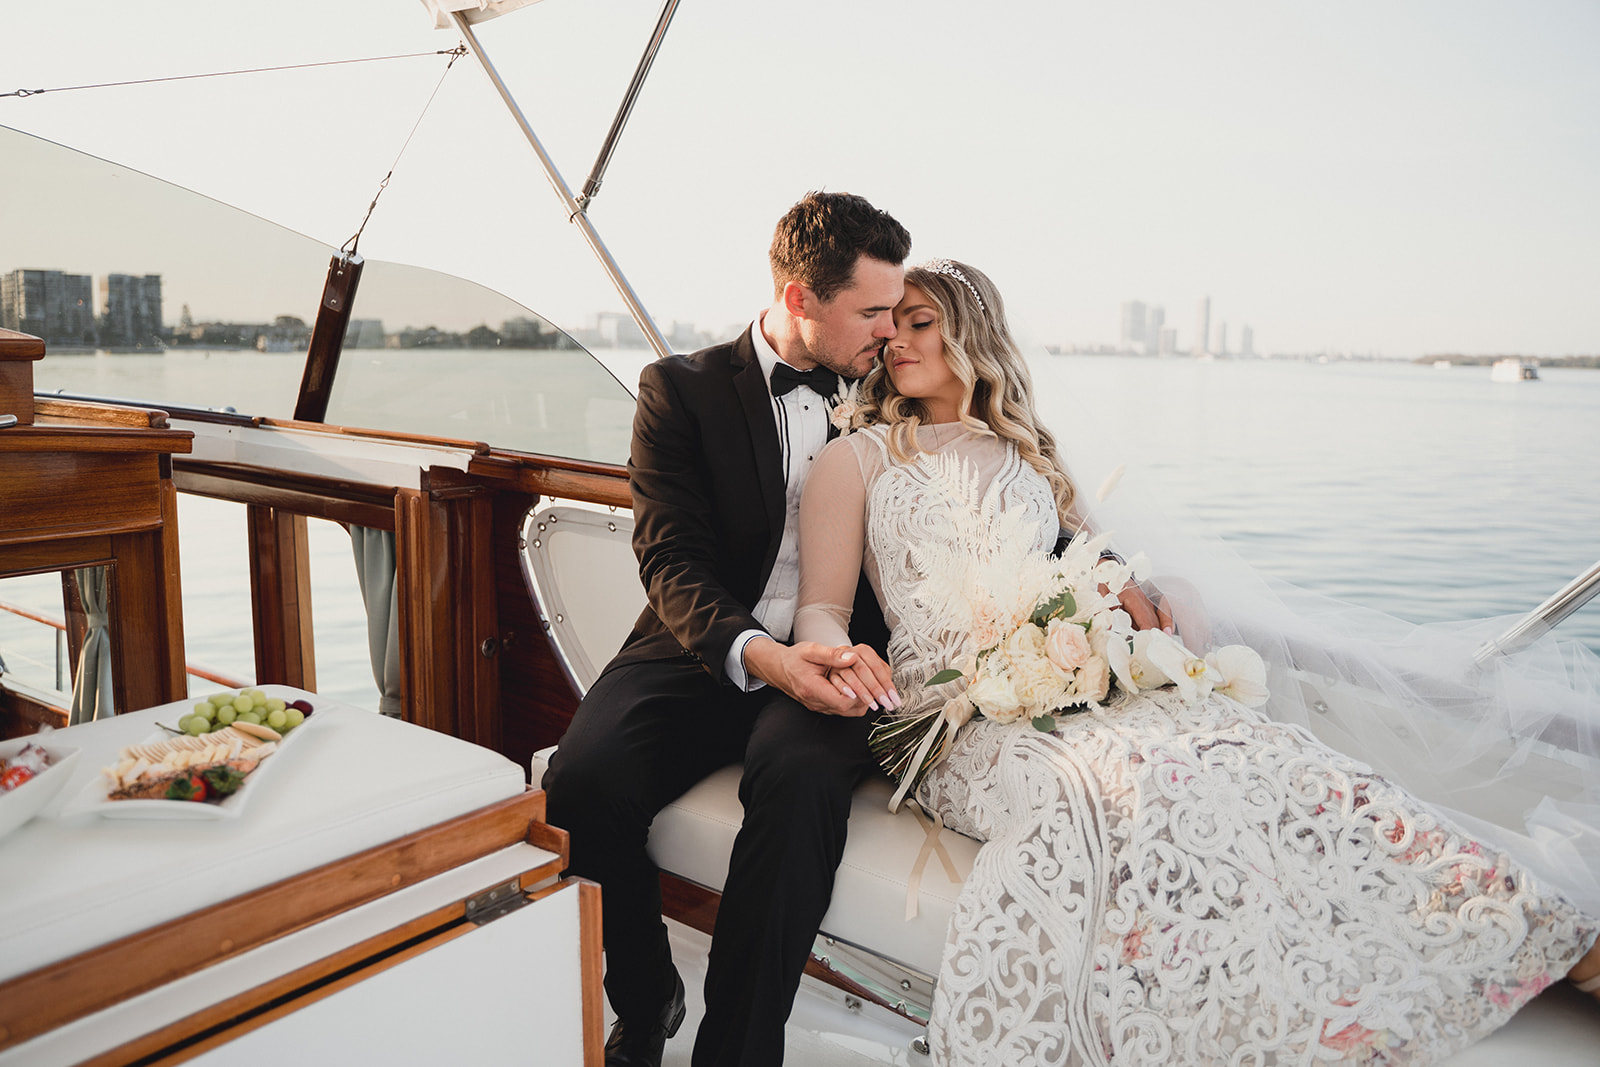 STYLED: WEDDING DAY ADVENTURES ON THE WATER | EDITORIAL INSPIRATION GOLD COAST QLD